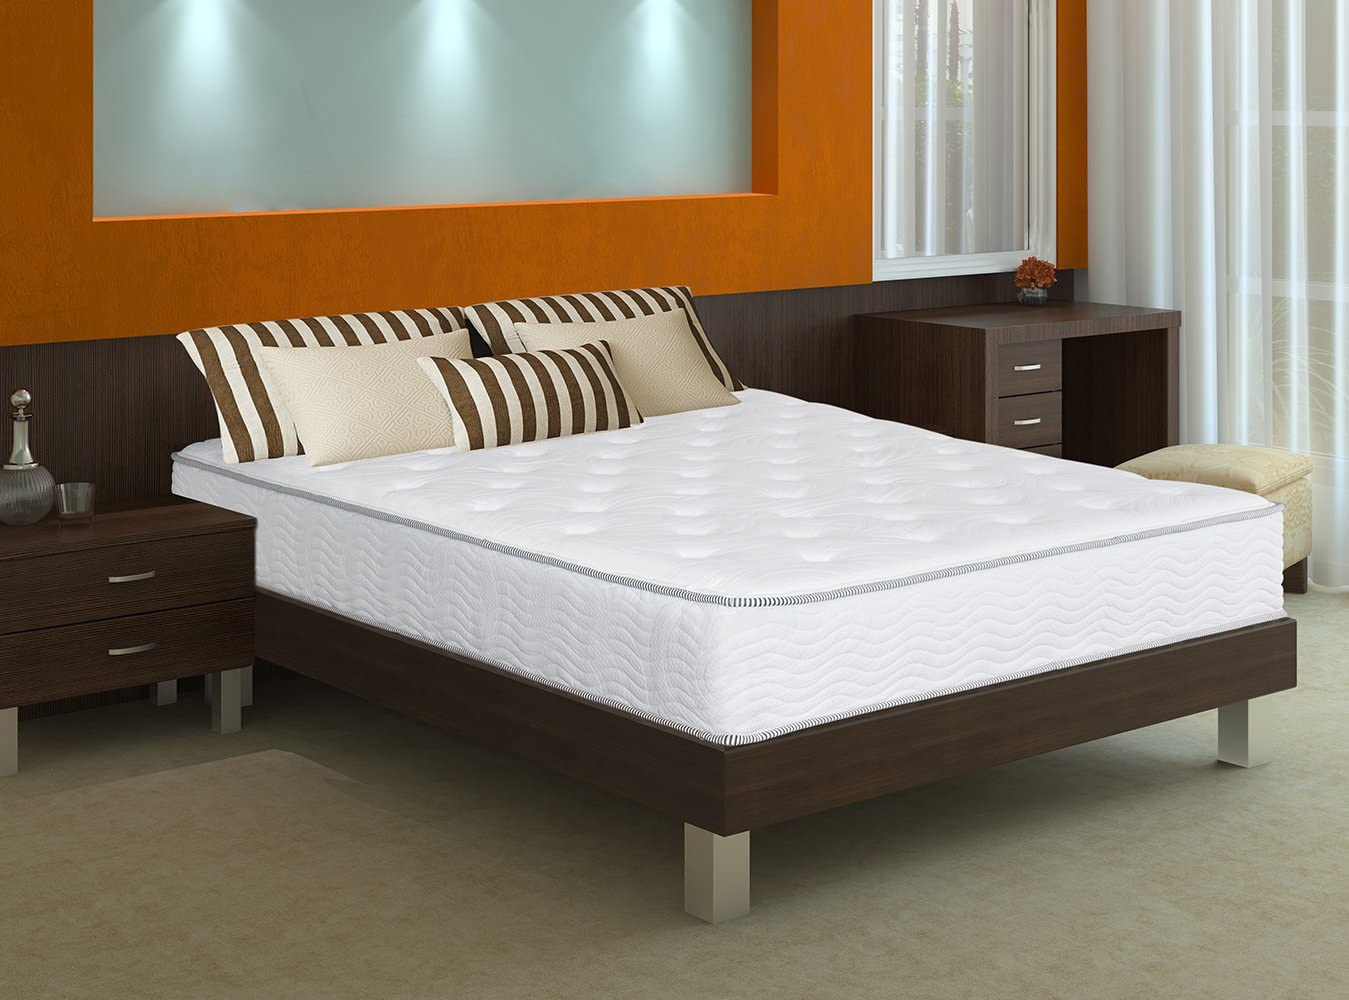 SLEEPLACE 10 in Milky way Tight Top Spring Mattress, Full